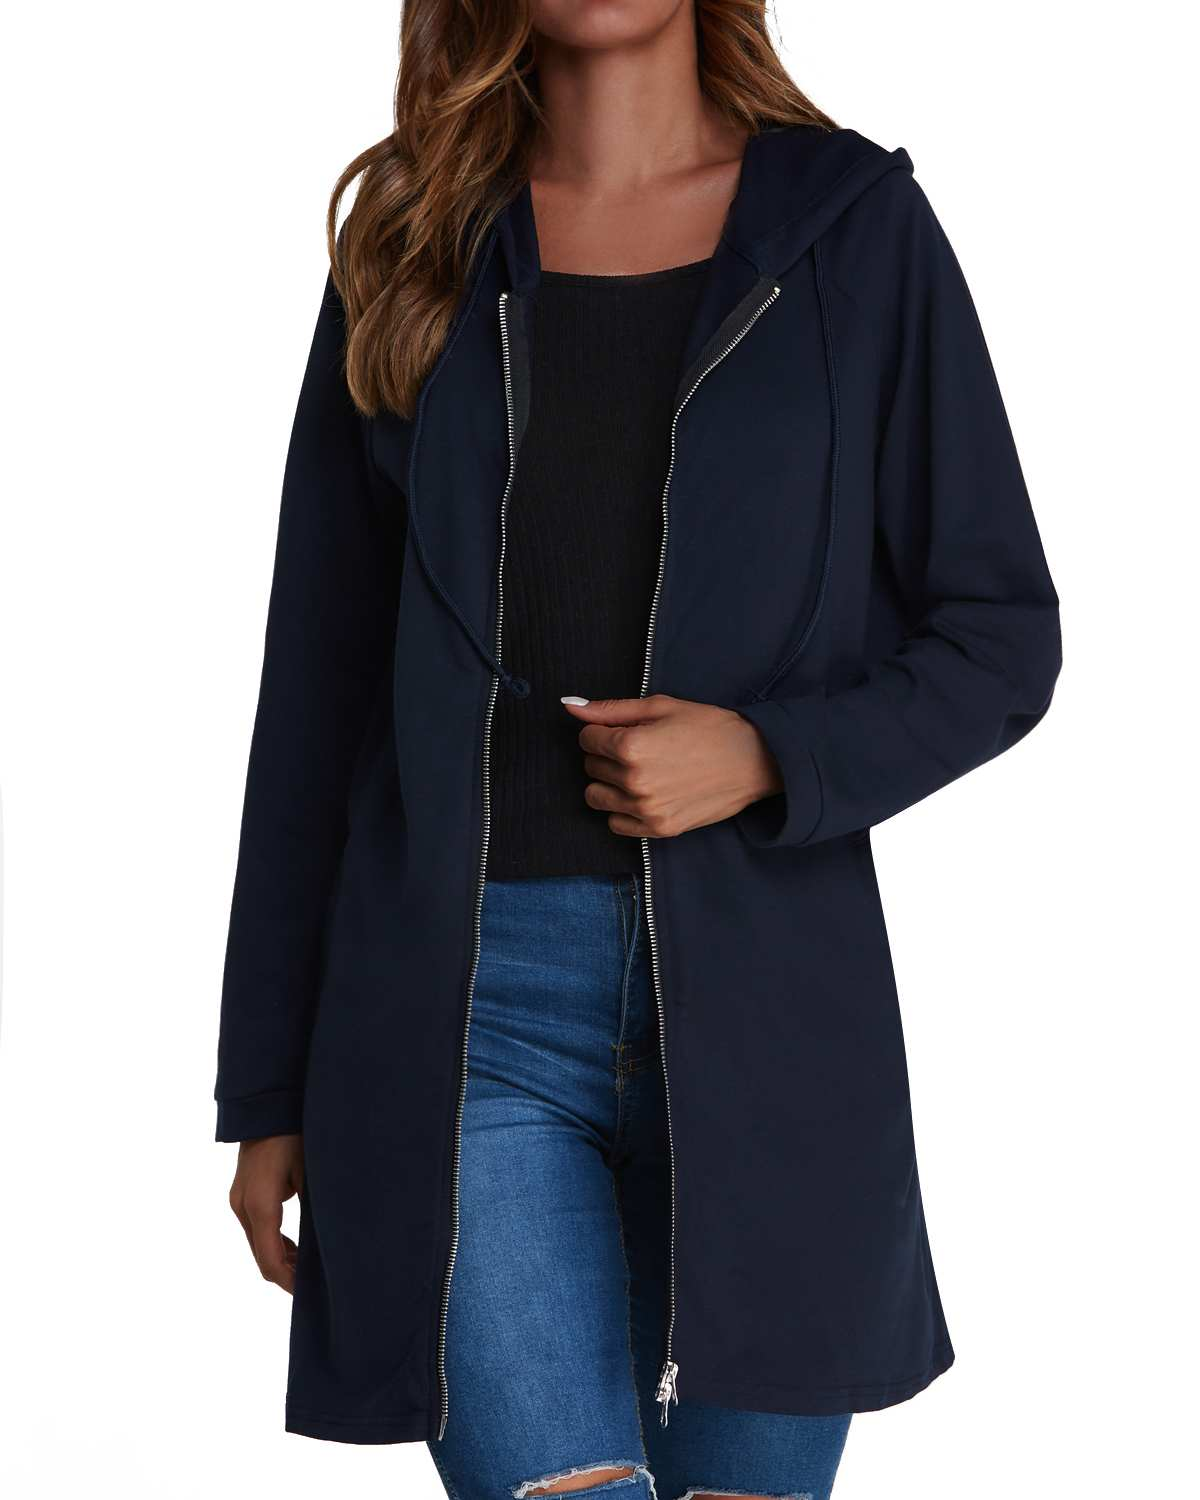 2019 ZANZEA Hooded Cardigan Coats Spring Autumn Casual Straight   Trench   Women Pockets Zipper Solid Color Long   Trench   Coats Female